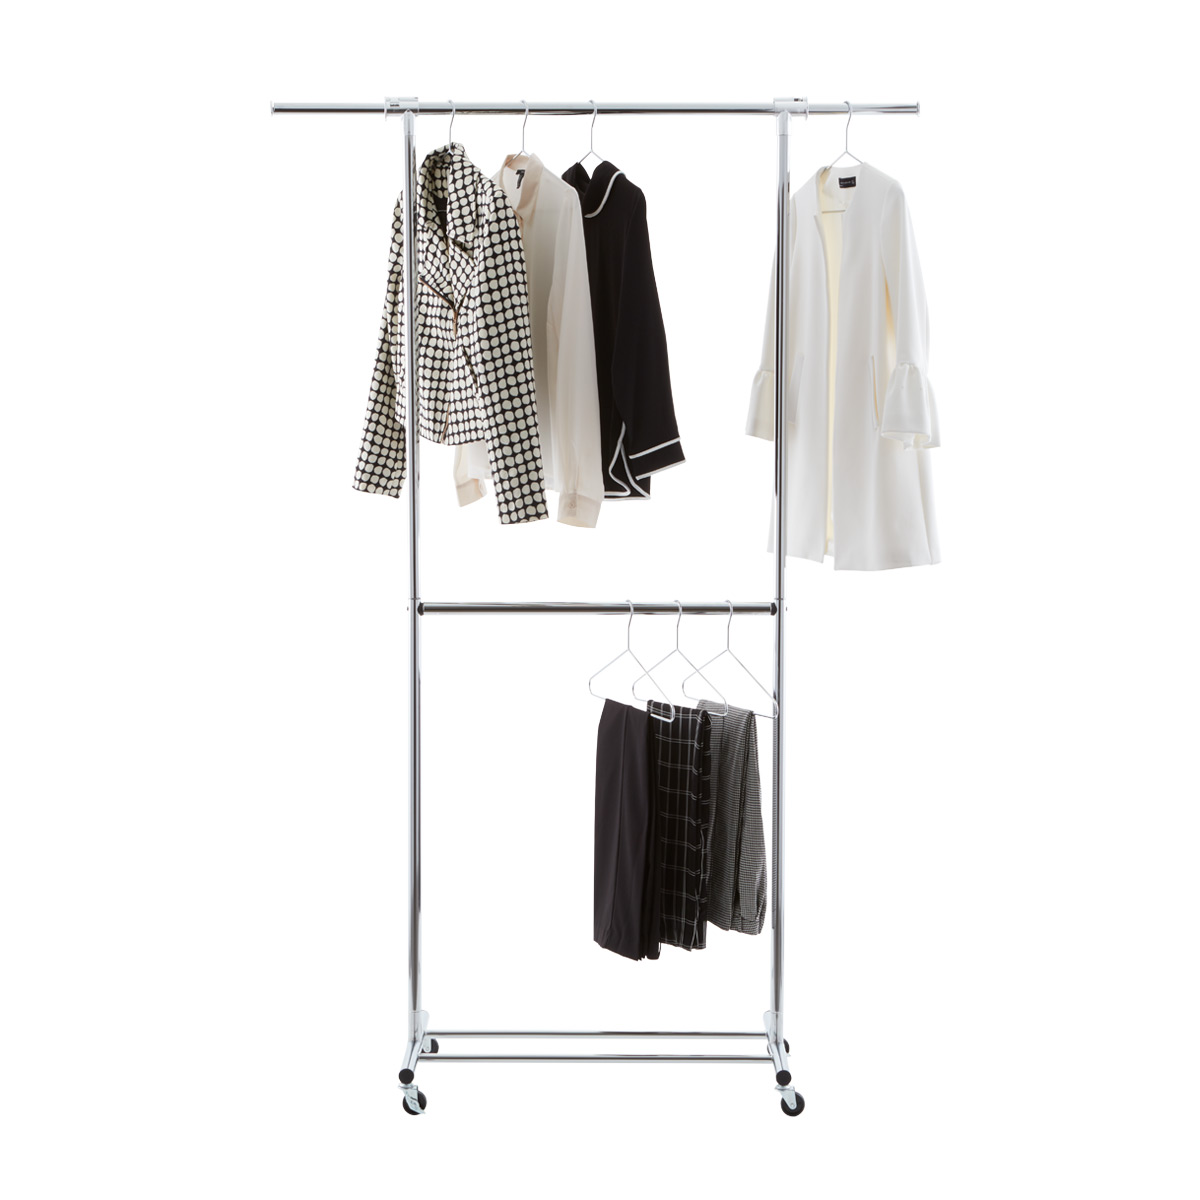 Etonnant Clothes Rack   Chrome Metal Double Hang Clothes Rack | The Container Store